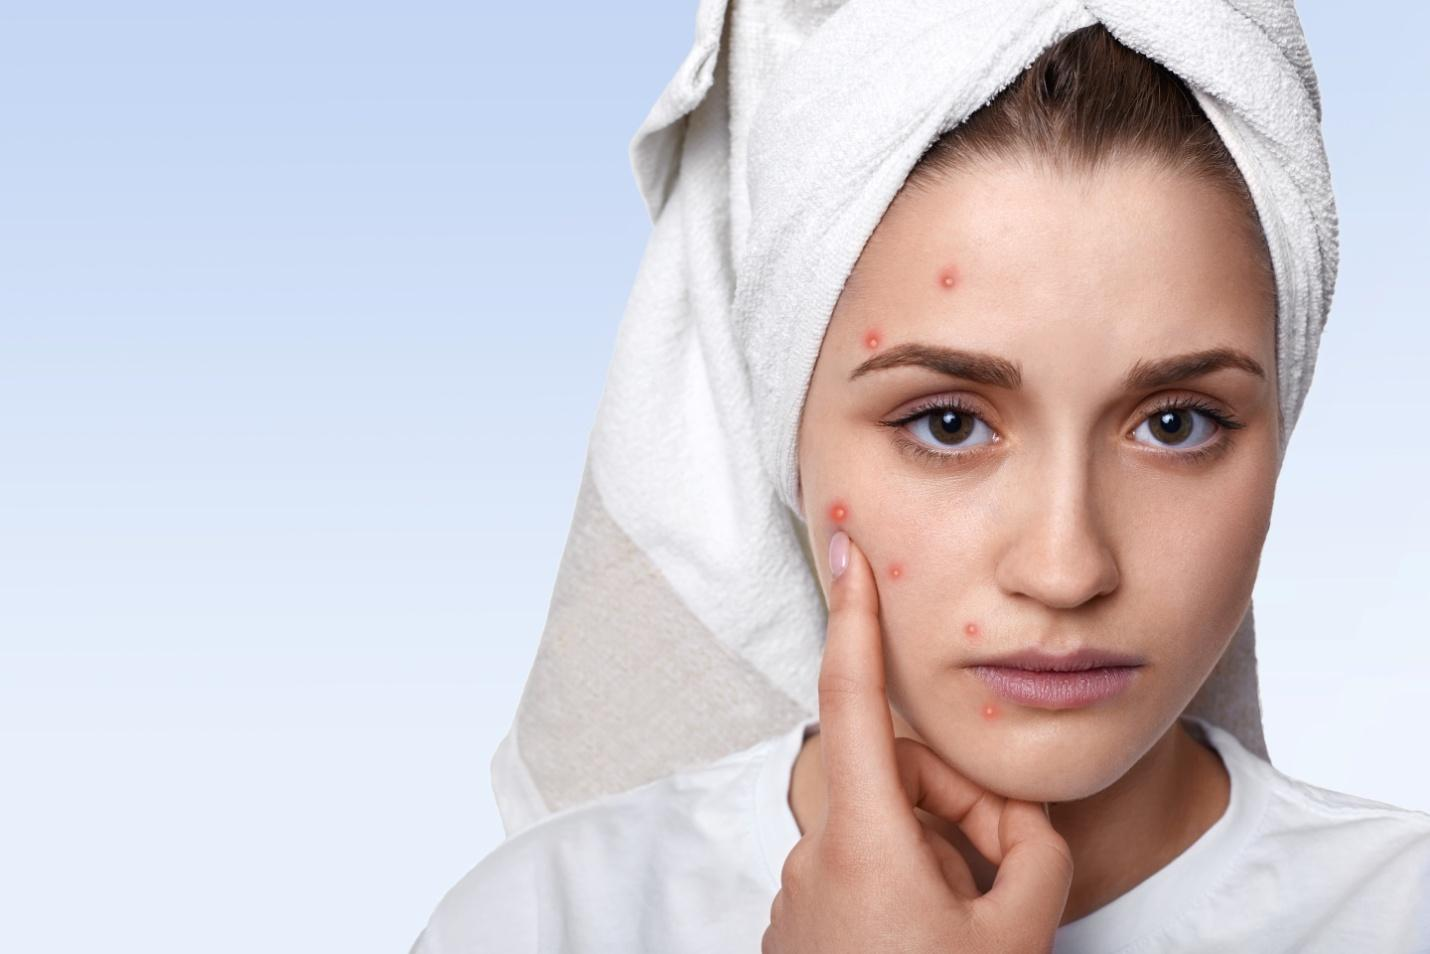 C:\Users\dell\Downloads\portrait-young-woman-having-problem-skin-pimple-her-cheek-wearing-towel-her-head-having-sad-expression-pointing.jpg